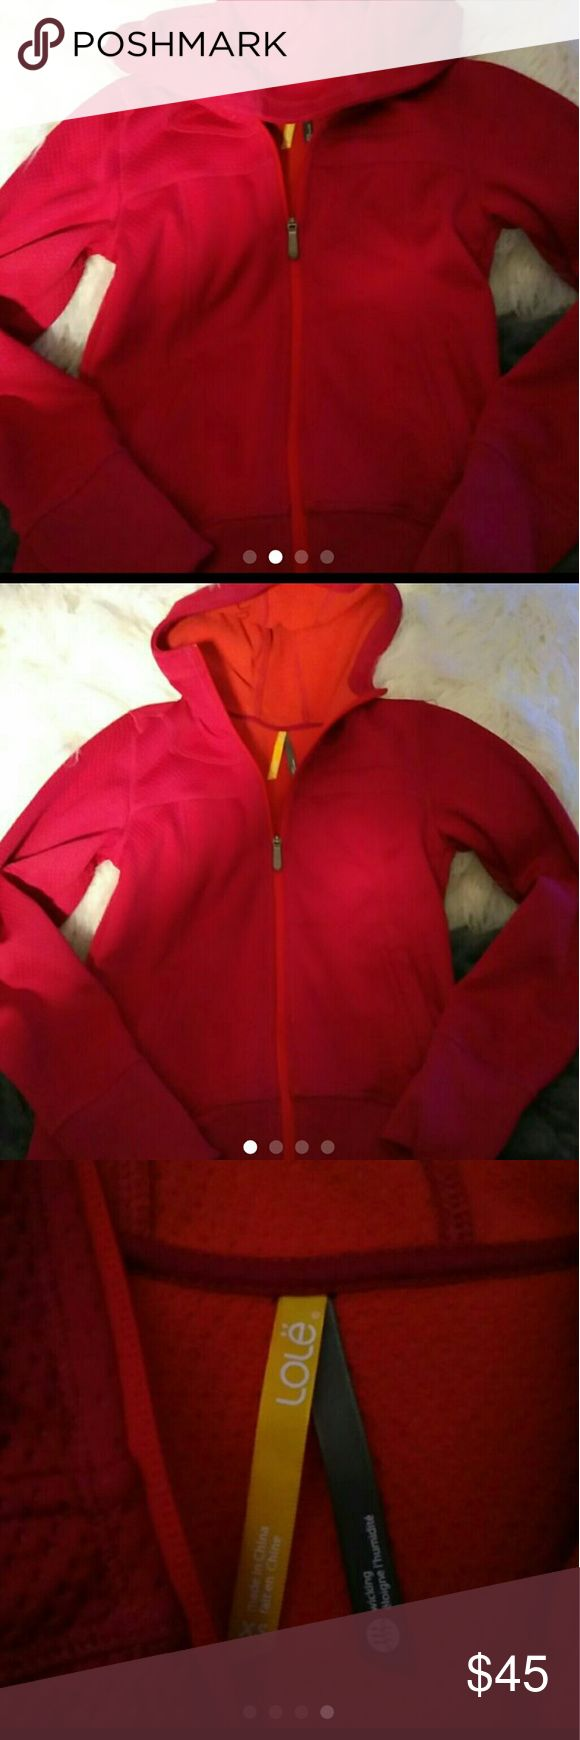 Lole Lole athletic jacket full zip bnwot has lole on hood this is more like a maroon color Lole Jackets & Coats